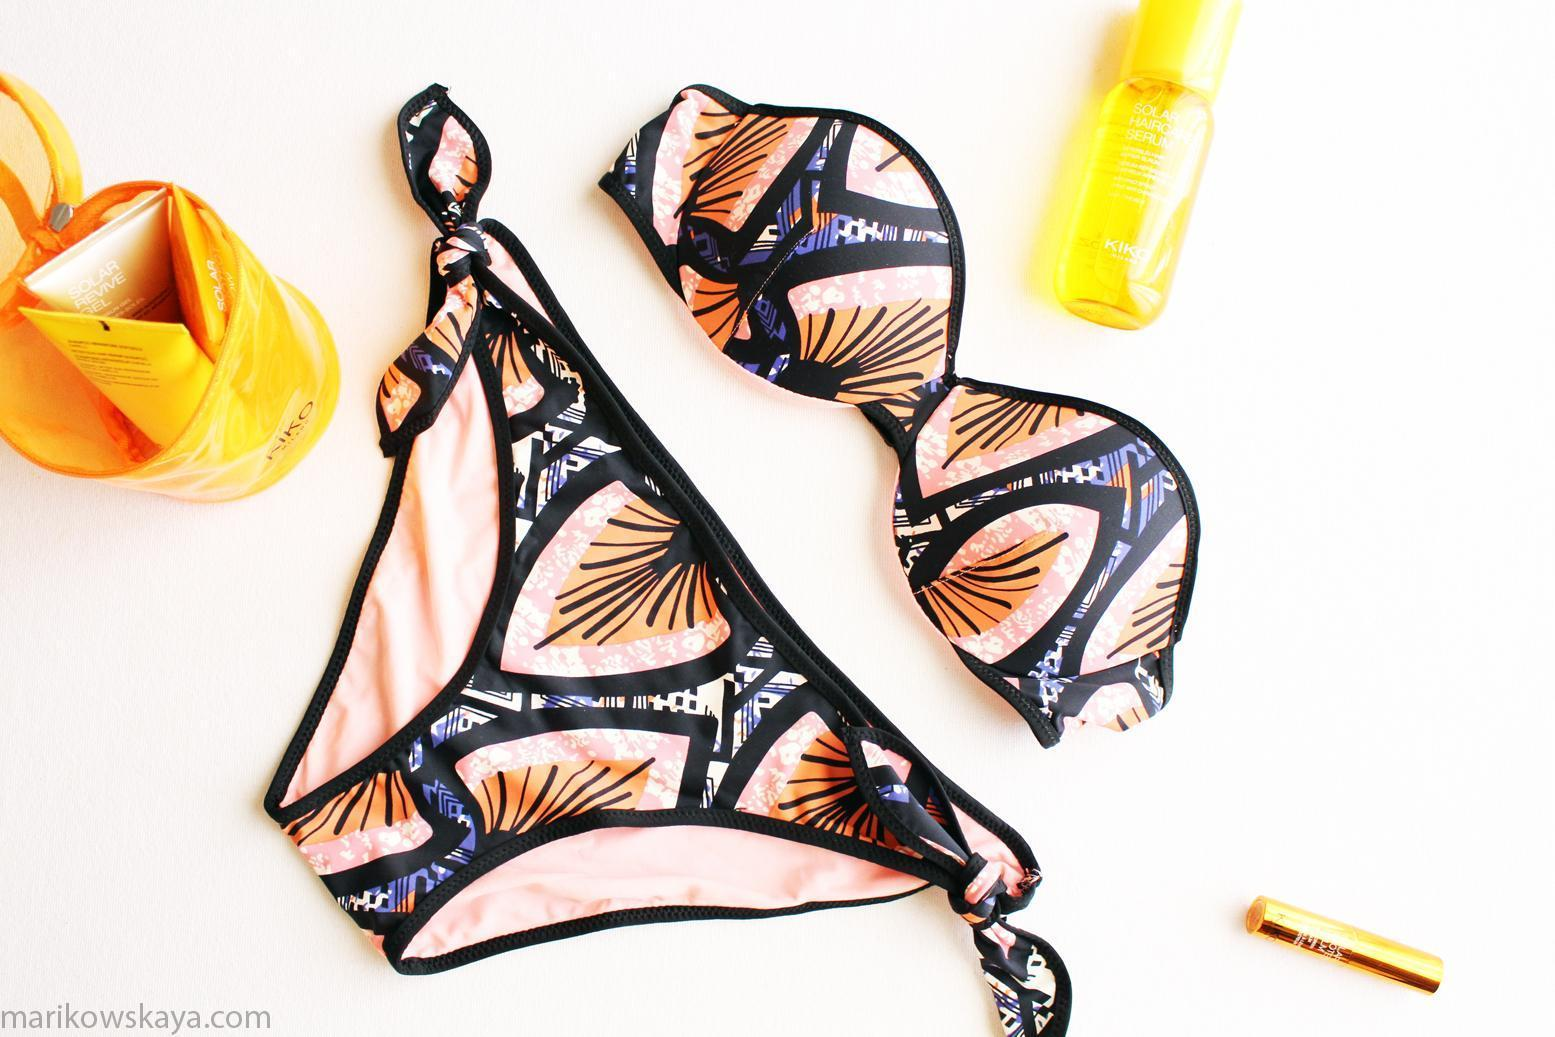 haul bikinis - woman secret estampado africano